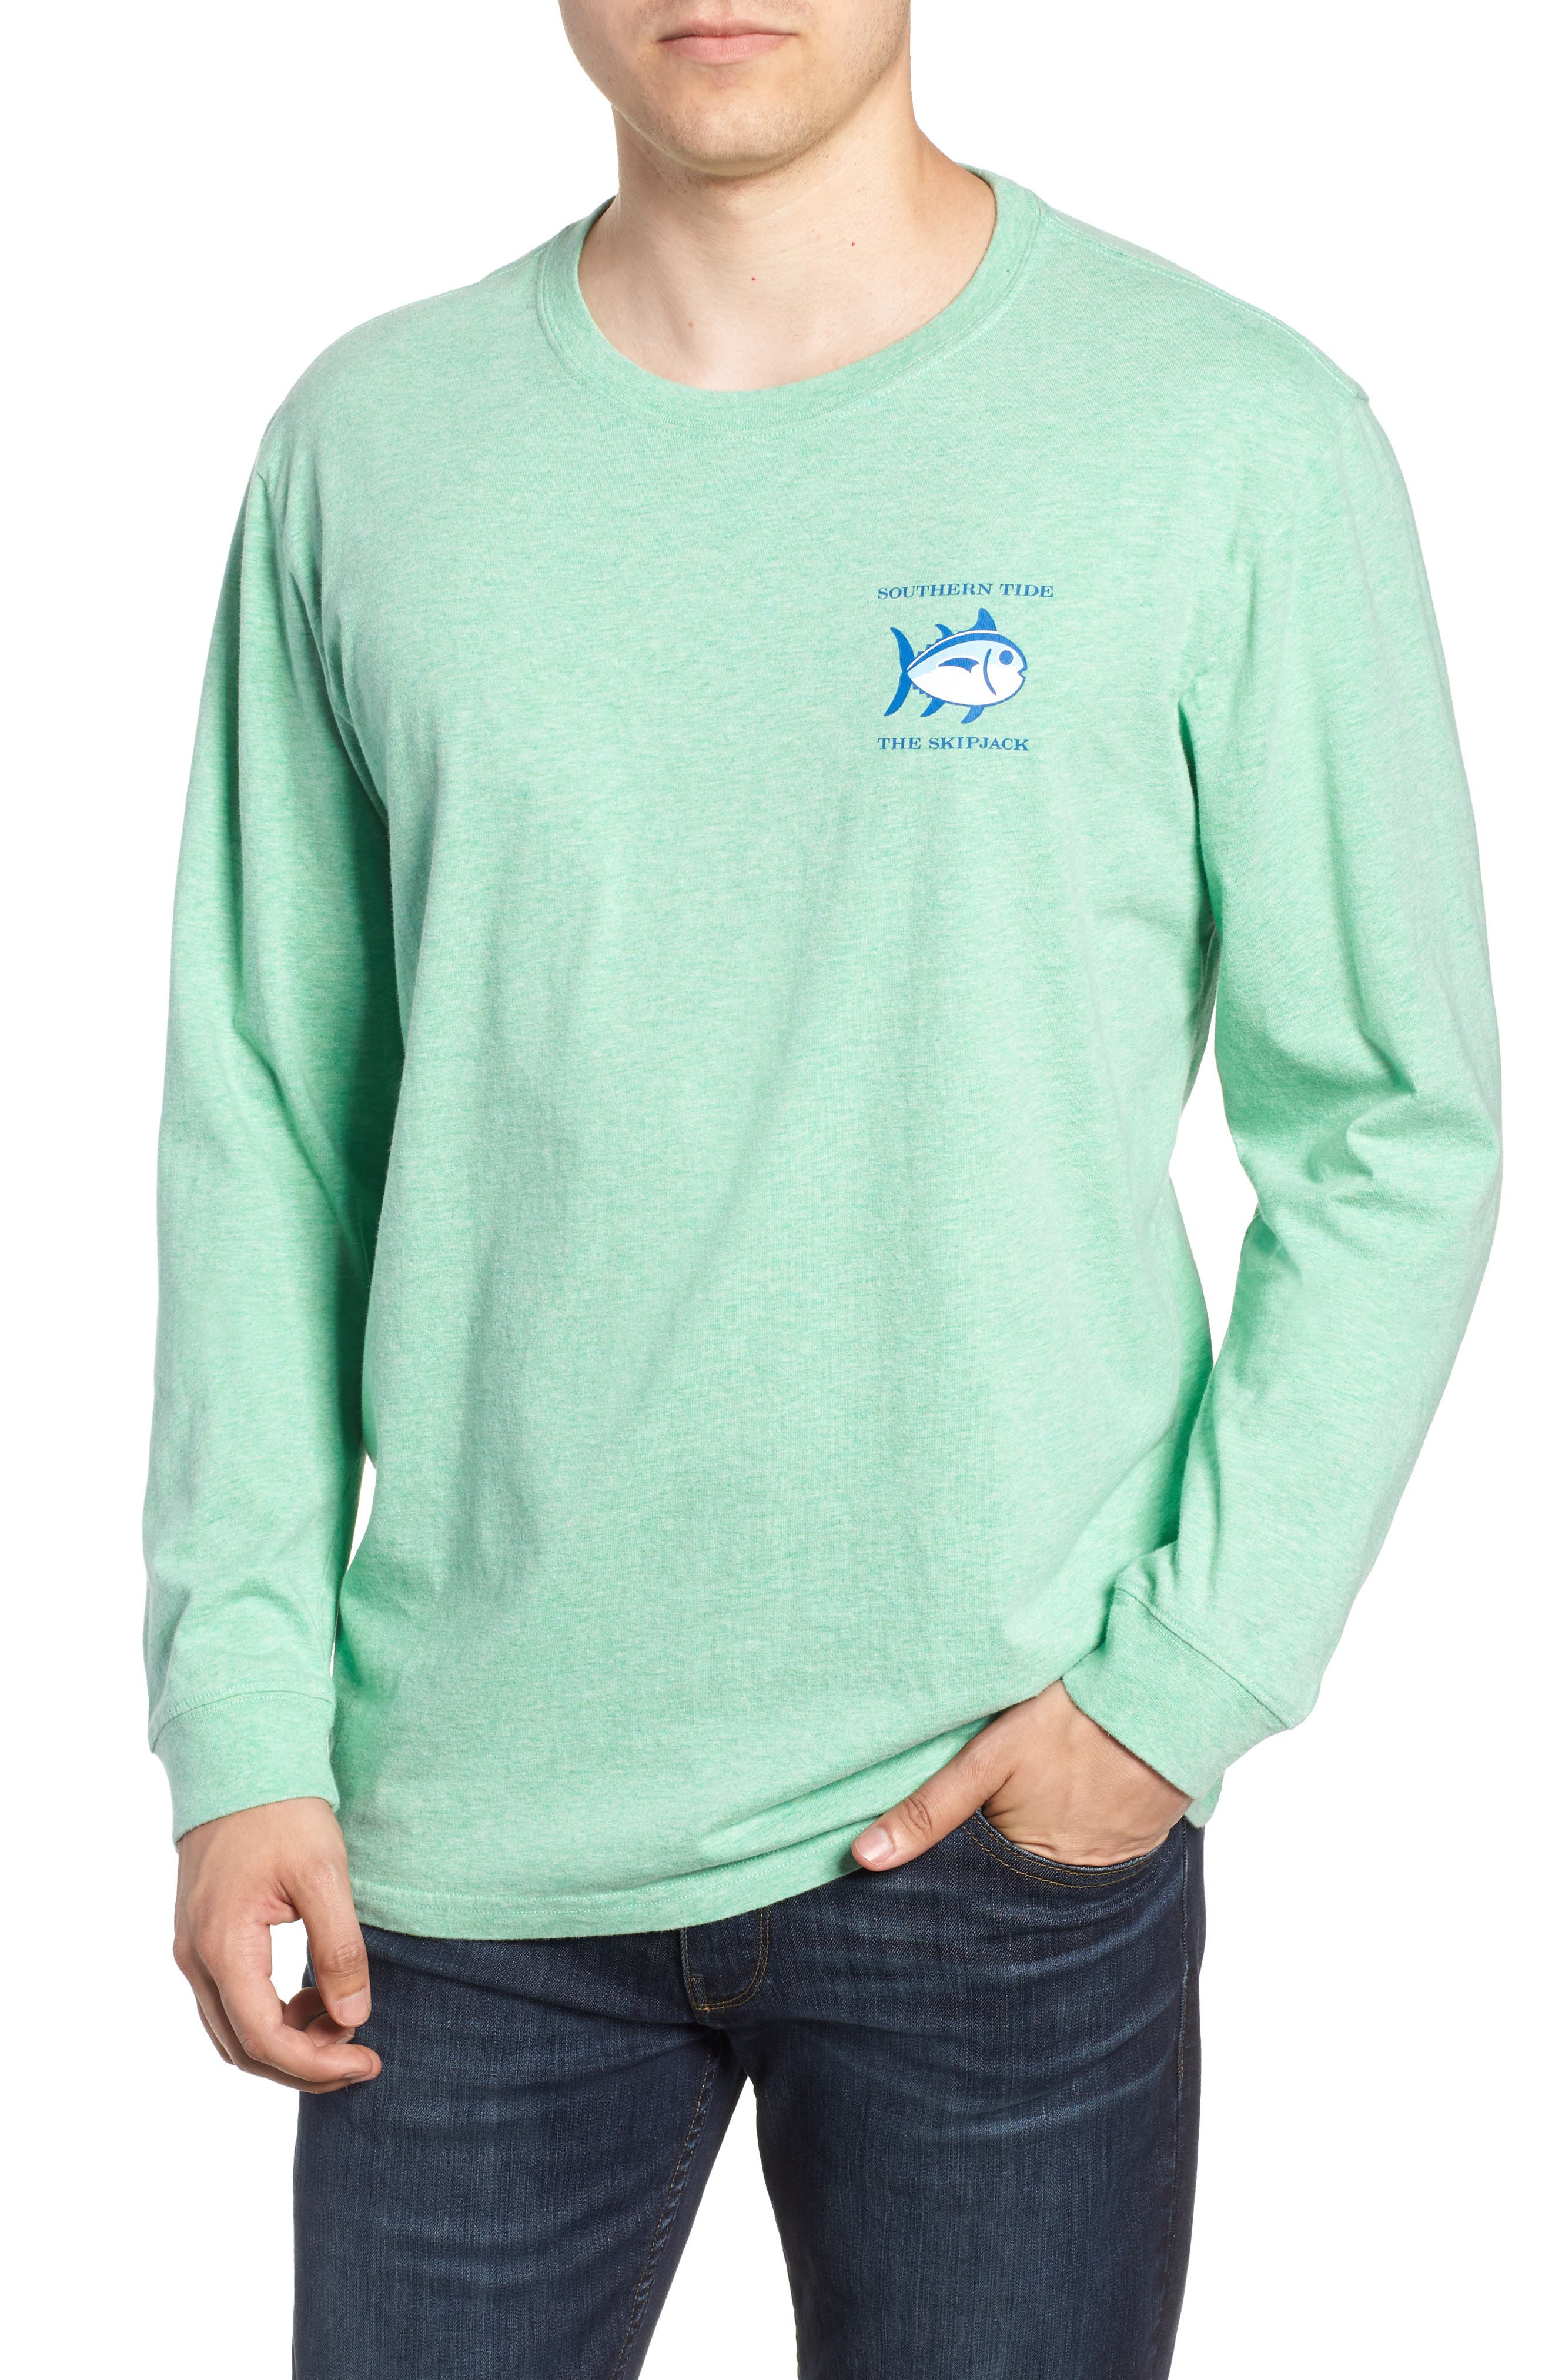 Original Skipjack T-Shirt,                             Main thumbnail 1, color,